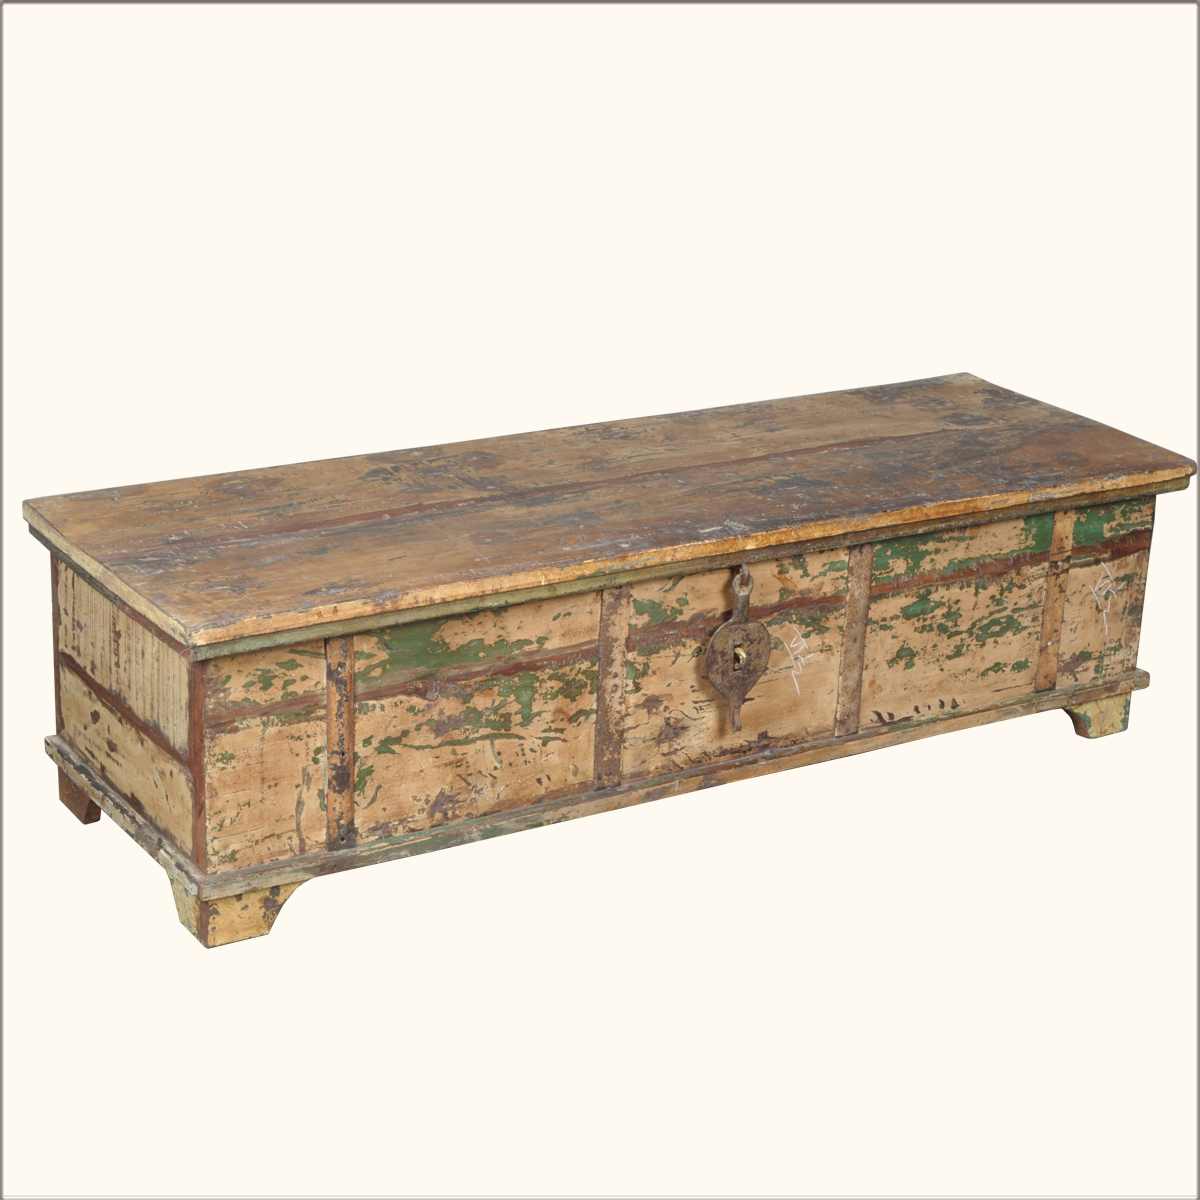 Large Rustic Reclaimed Distressed Old Wood Coffee Table Chest Trunk Storage Box Ebay